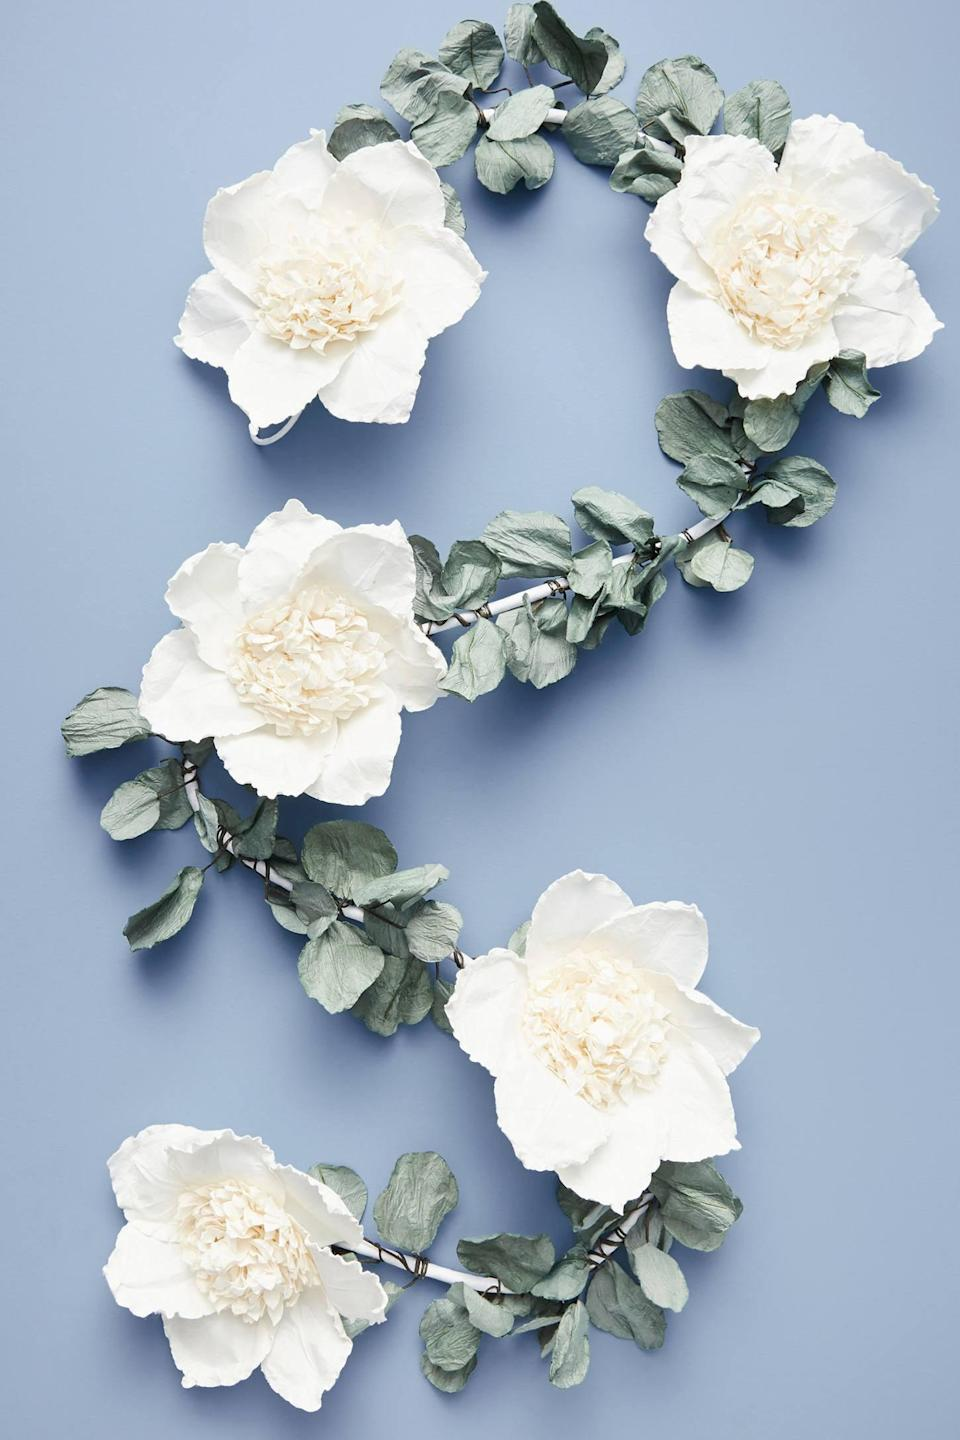 """<p>The <a href=""""https://www.popsugar.com/buy/Eucalyptus-Paper-Garland-490498?p_name=Eucalyptus%20Paper%20Garland&retailer=anthropologie.com&pid=490498&price=78&evar1=casa%3Aus&evar9=46615300&evar98=https%3A%2F%2Fwww.popsugar.com%2Fhome%2Fphoto-gallery%2F46615300%2Fimage%2F46615368%2FEucalyptus-Paper-Garland&list1=shopping%2Canthropologie%2Choliday%2Cchristmas%2Cchristmas%20decorations%2Choliday%20decor%2Chome%20shopping&prop13=mobile&pdata=1"""" rel=""""nofollow noopener"""" class=""""link rapid-noclick-resp"""" target=""""_blank"""" data-ylk=""""slk:Eucalyptus Paper Garland"""">Eucalyptus Paper Garland</a> ($78) is beautiful for a tree, mantel, or even a banister. </p>"""